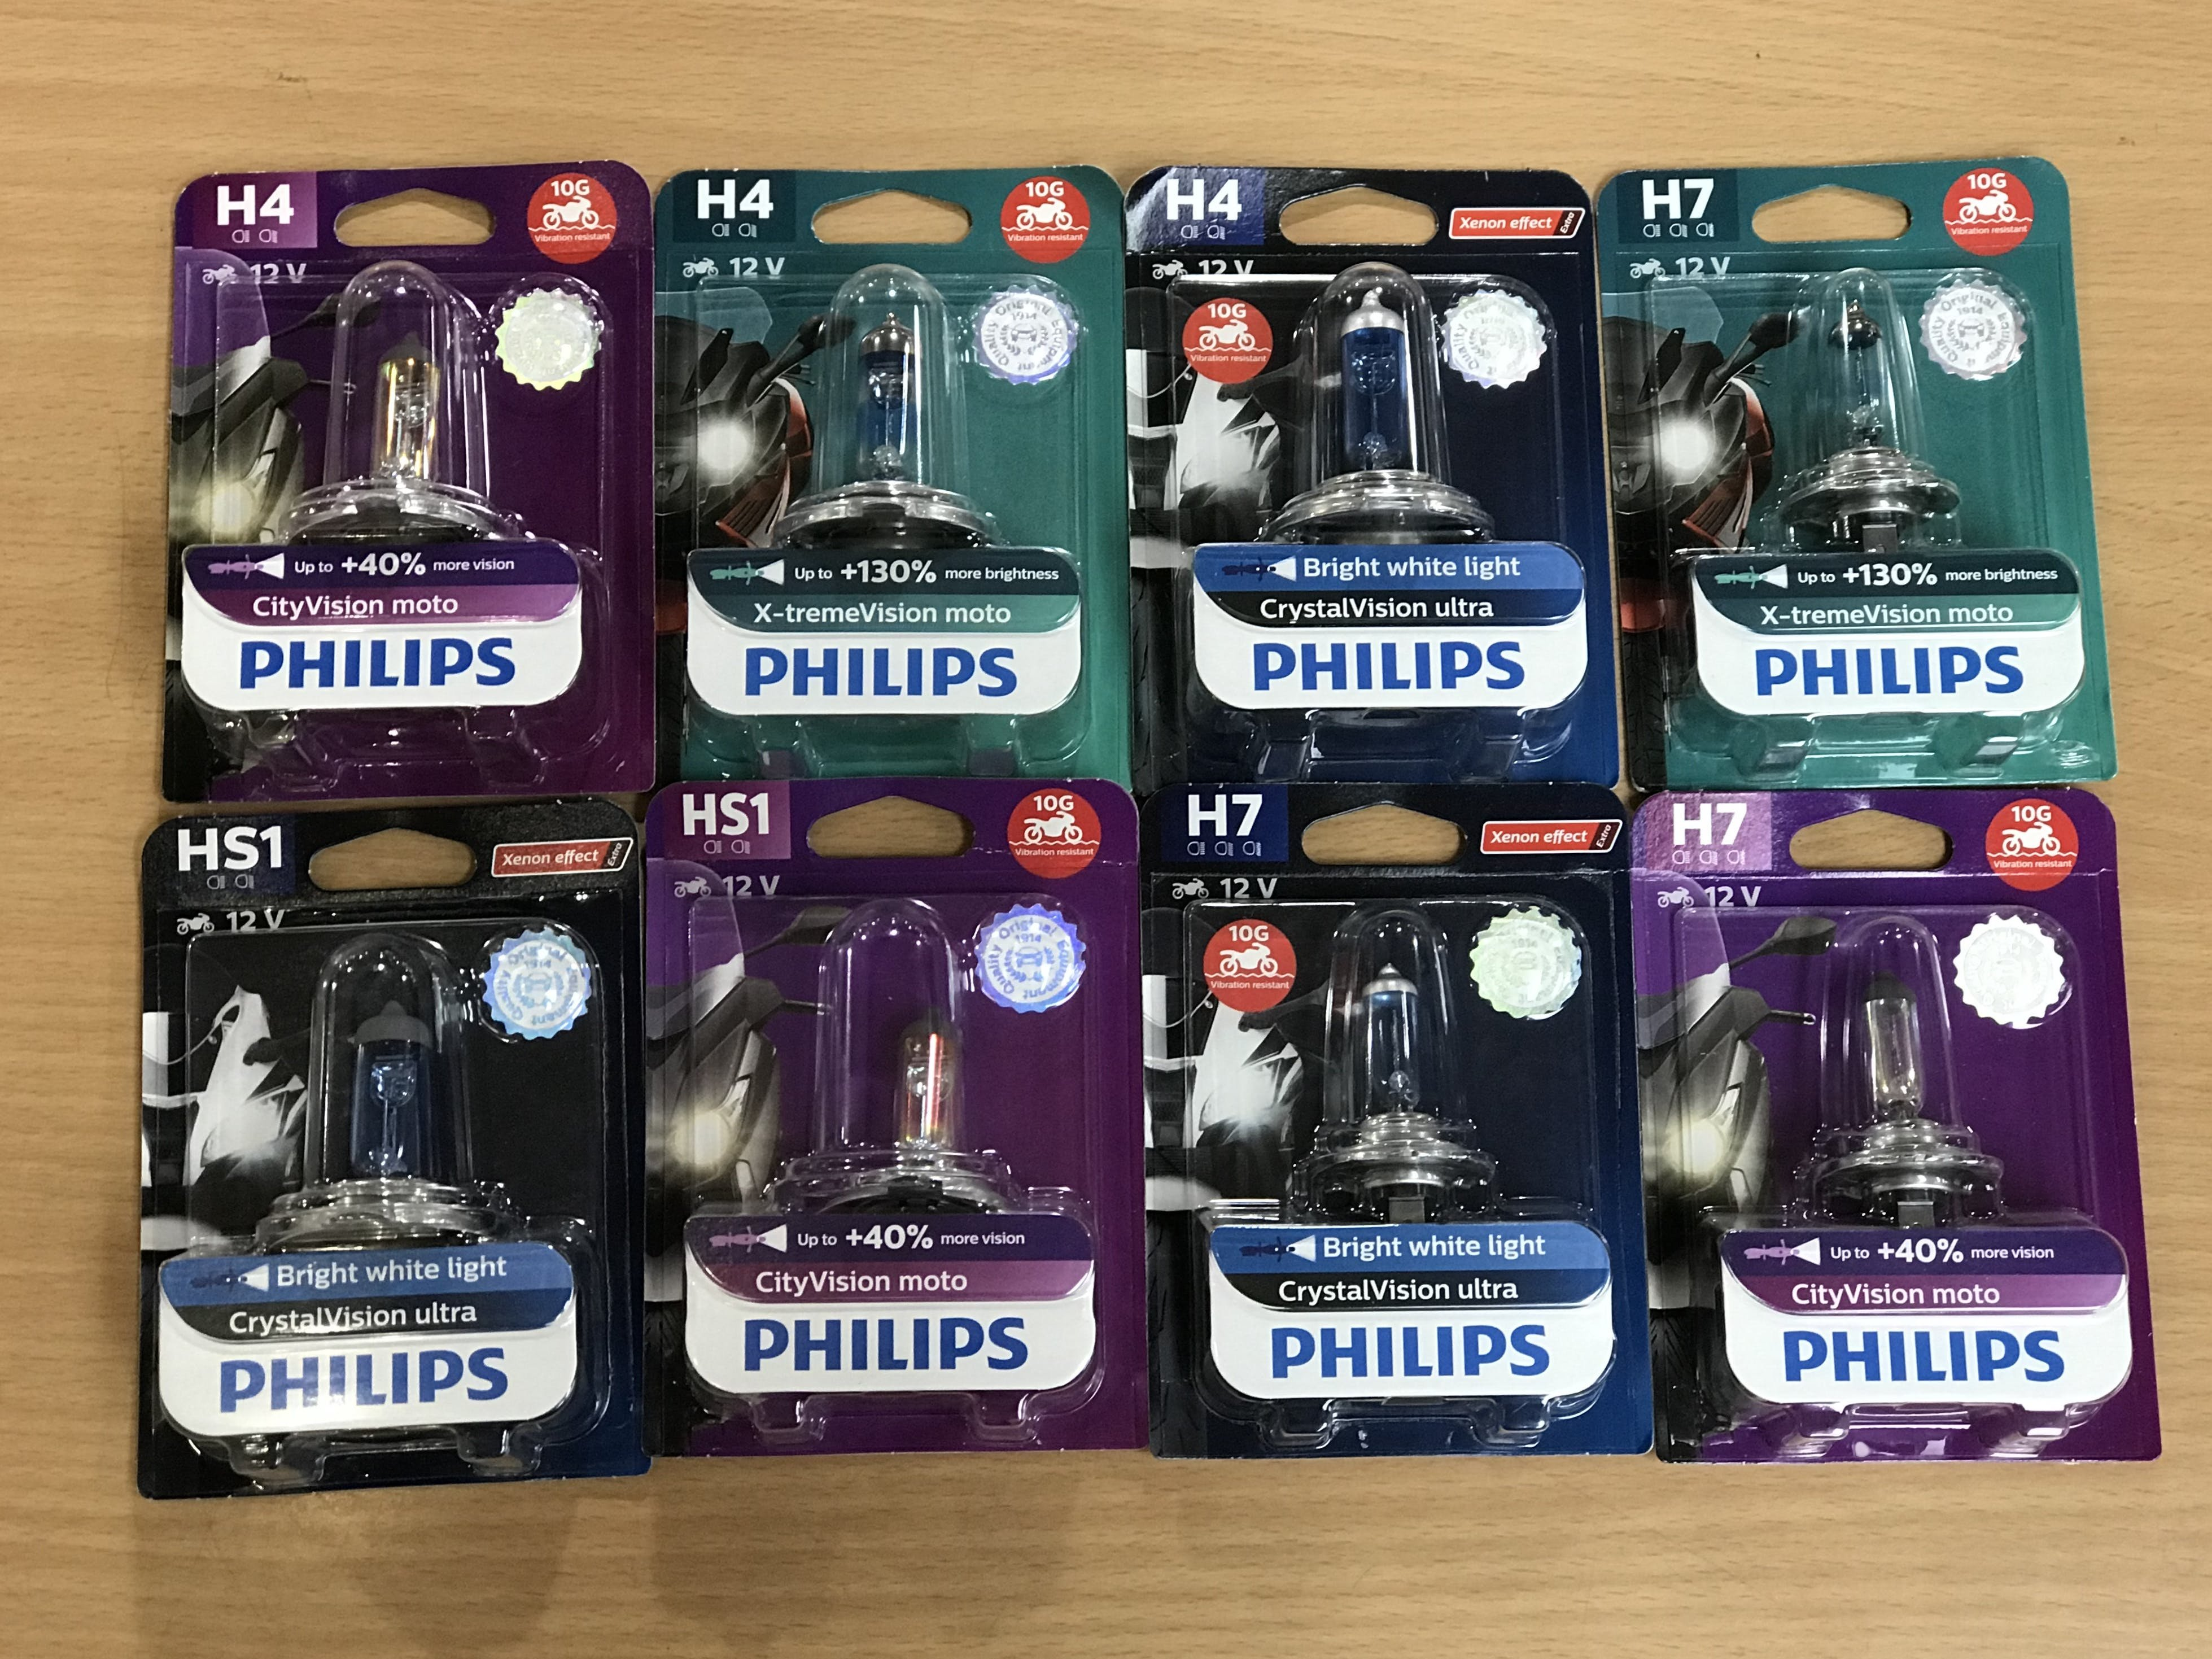 Different Philips branded light globes for motorcycles